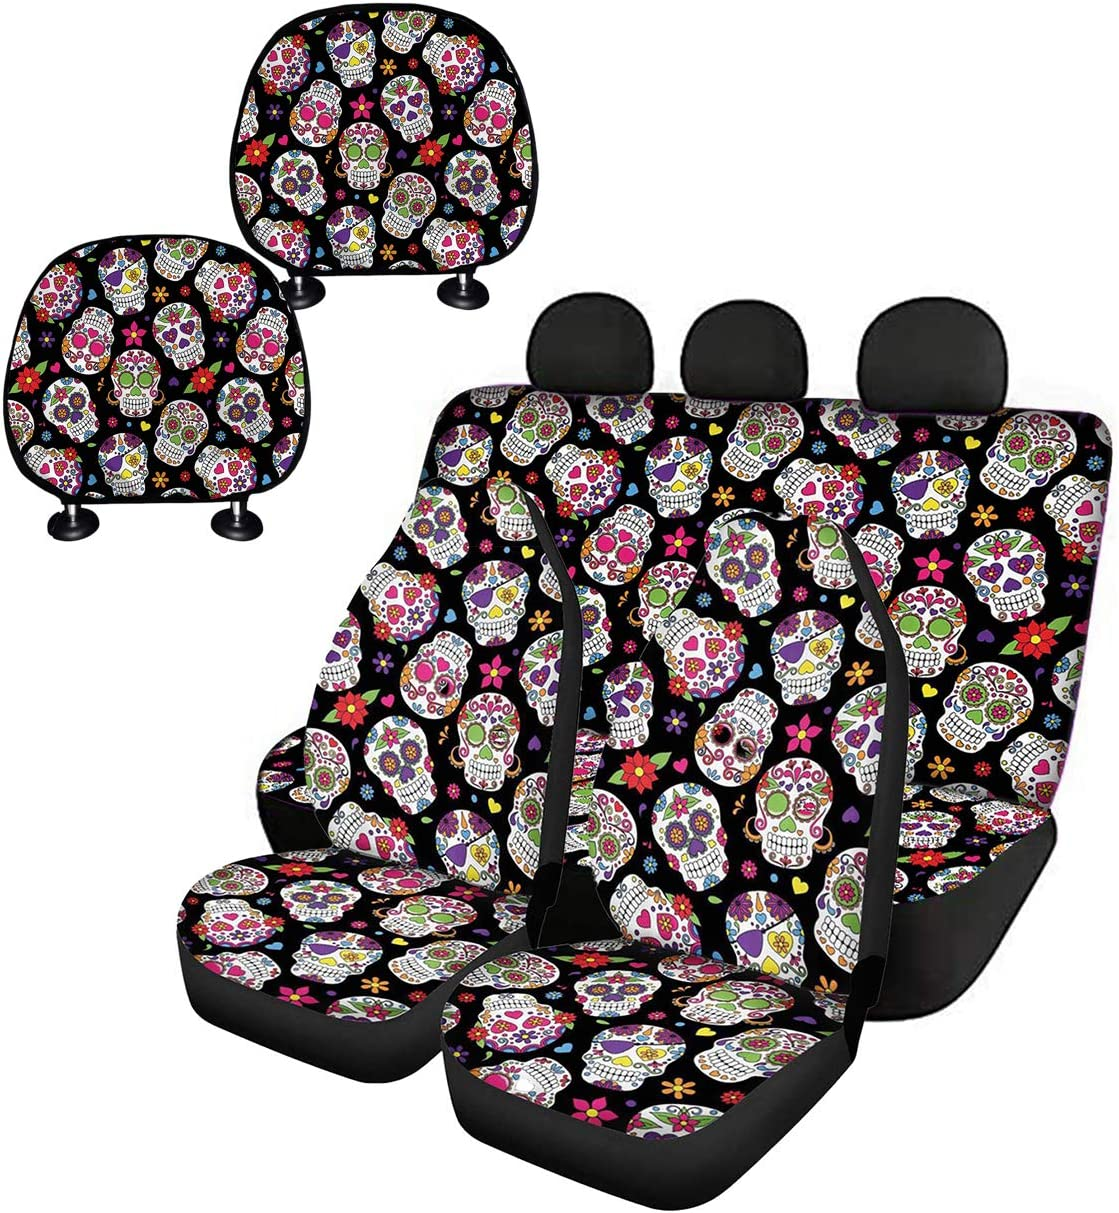 Universal Auto Accessories Novelty Seat Cover Head Rest Cover for SUV Van Truck Micandle 6pcs Aqua Flower Front Car Seat Covers and Rear Bench Back Seat Covers Headrest Cover Full Set